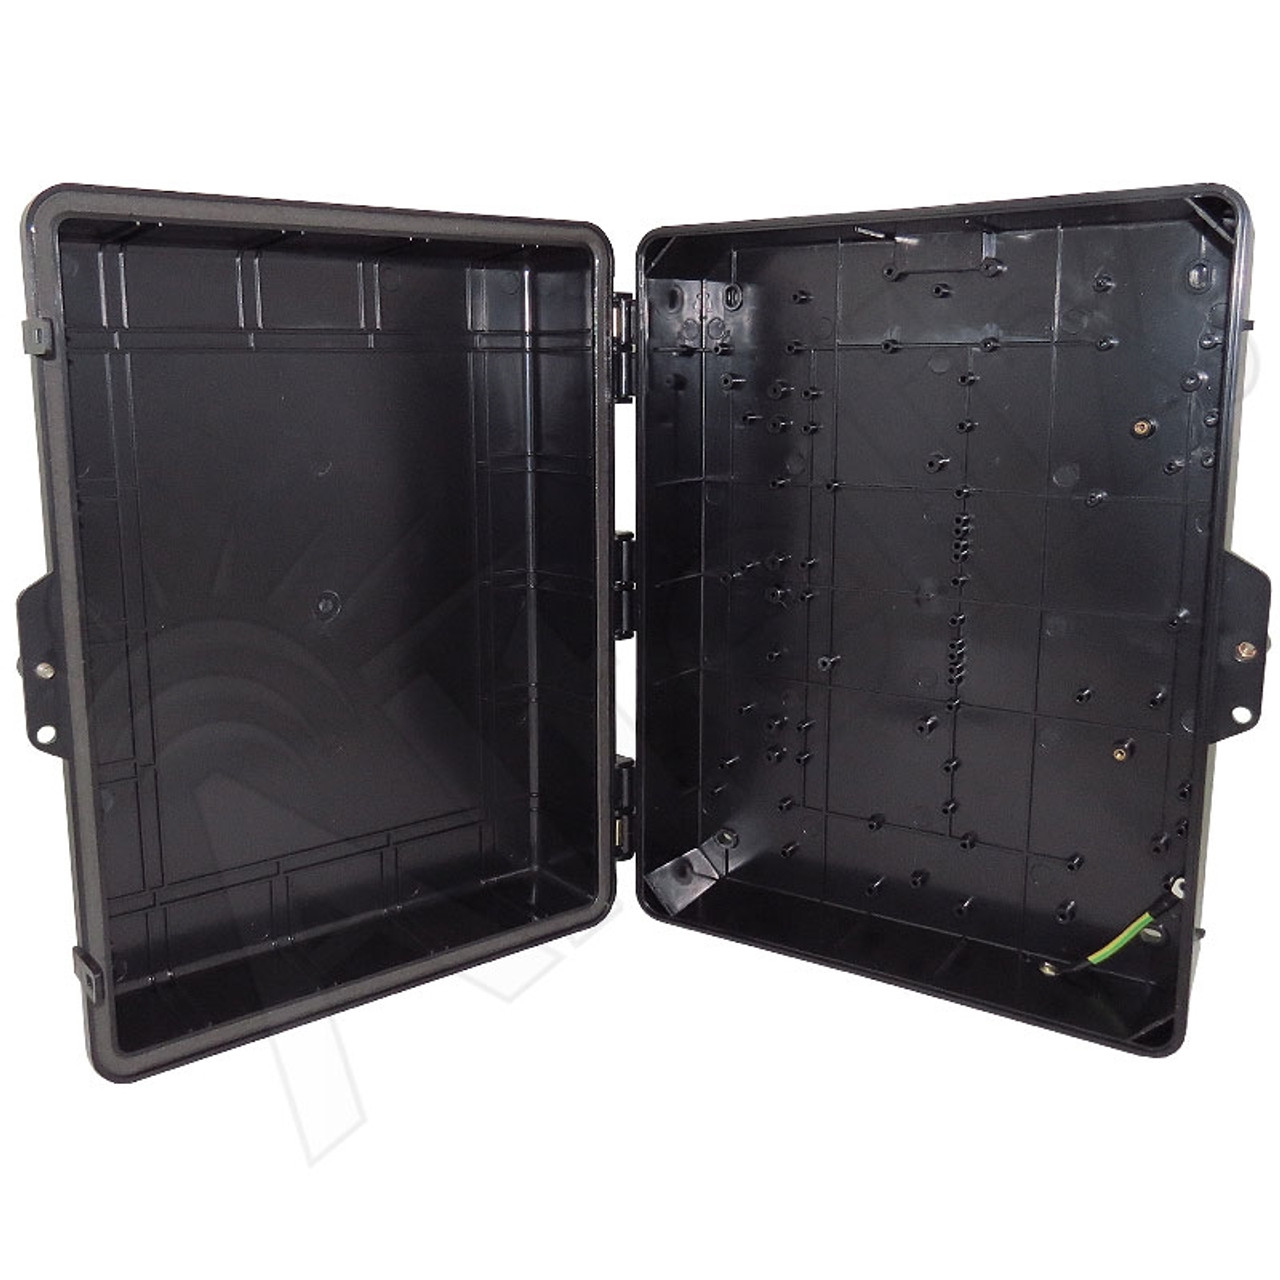 ABS Housing 172x176x68 Plastic Casing Black Universal Chassis A1001AW